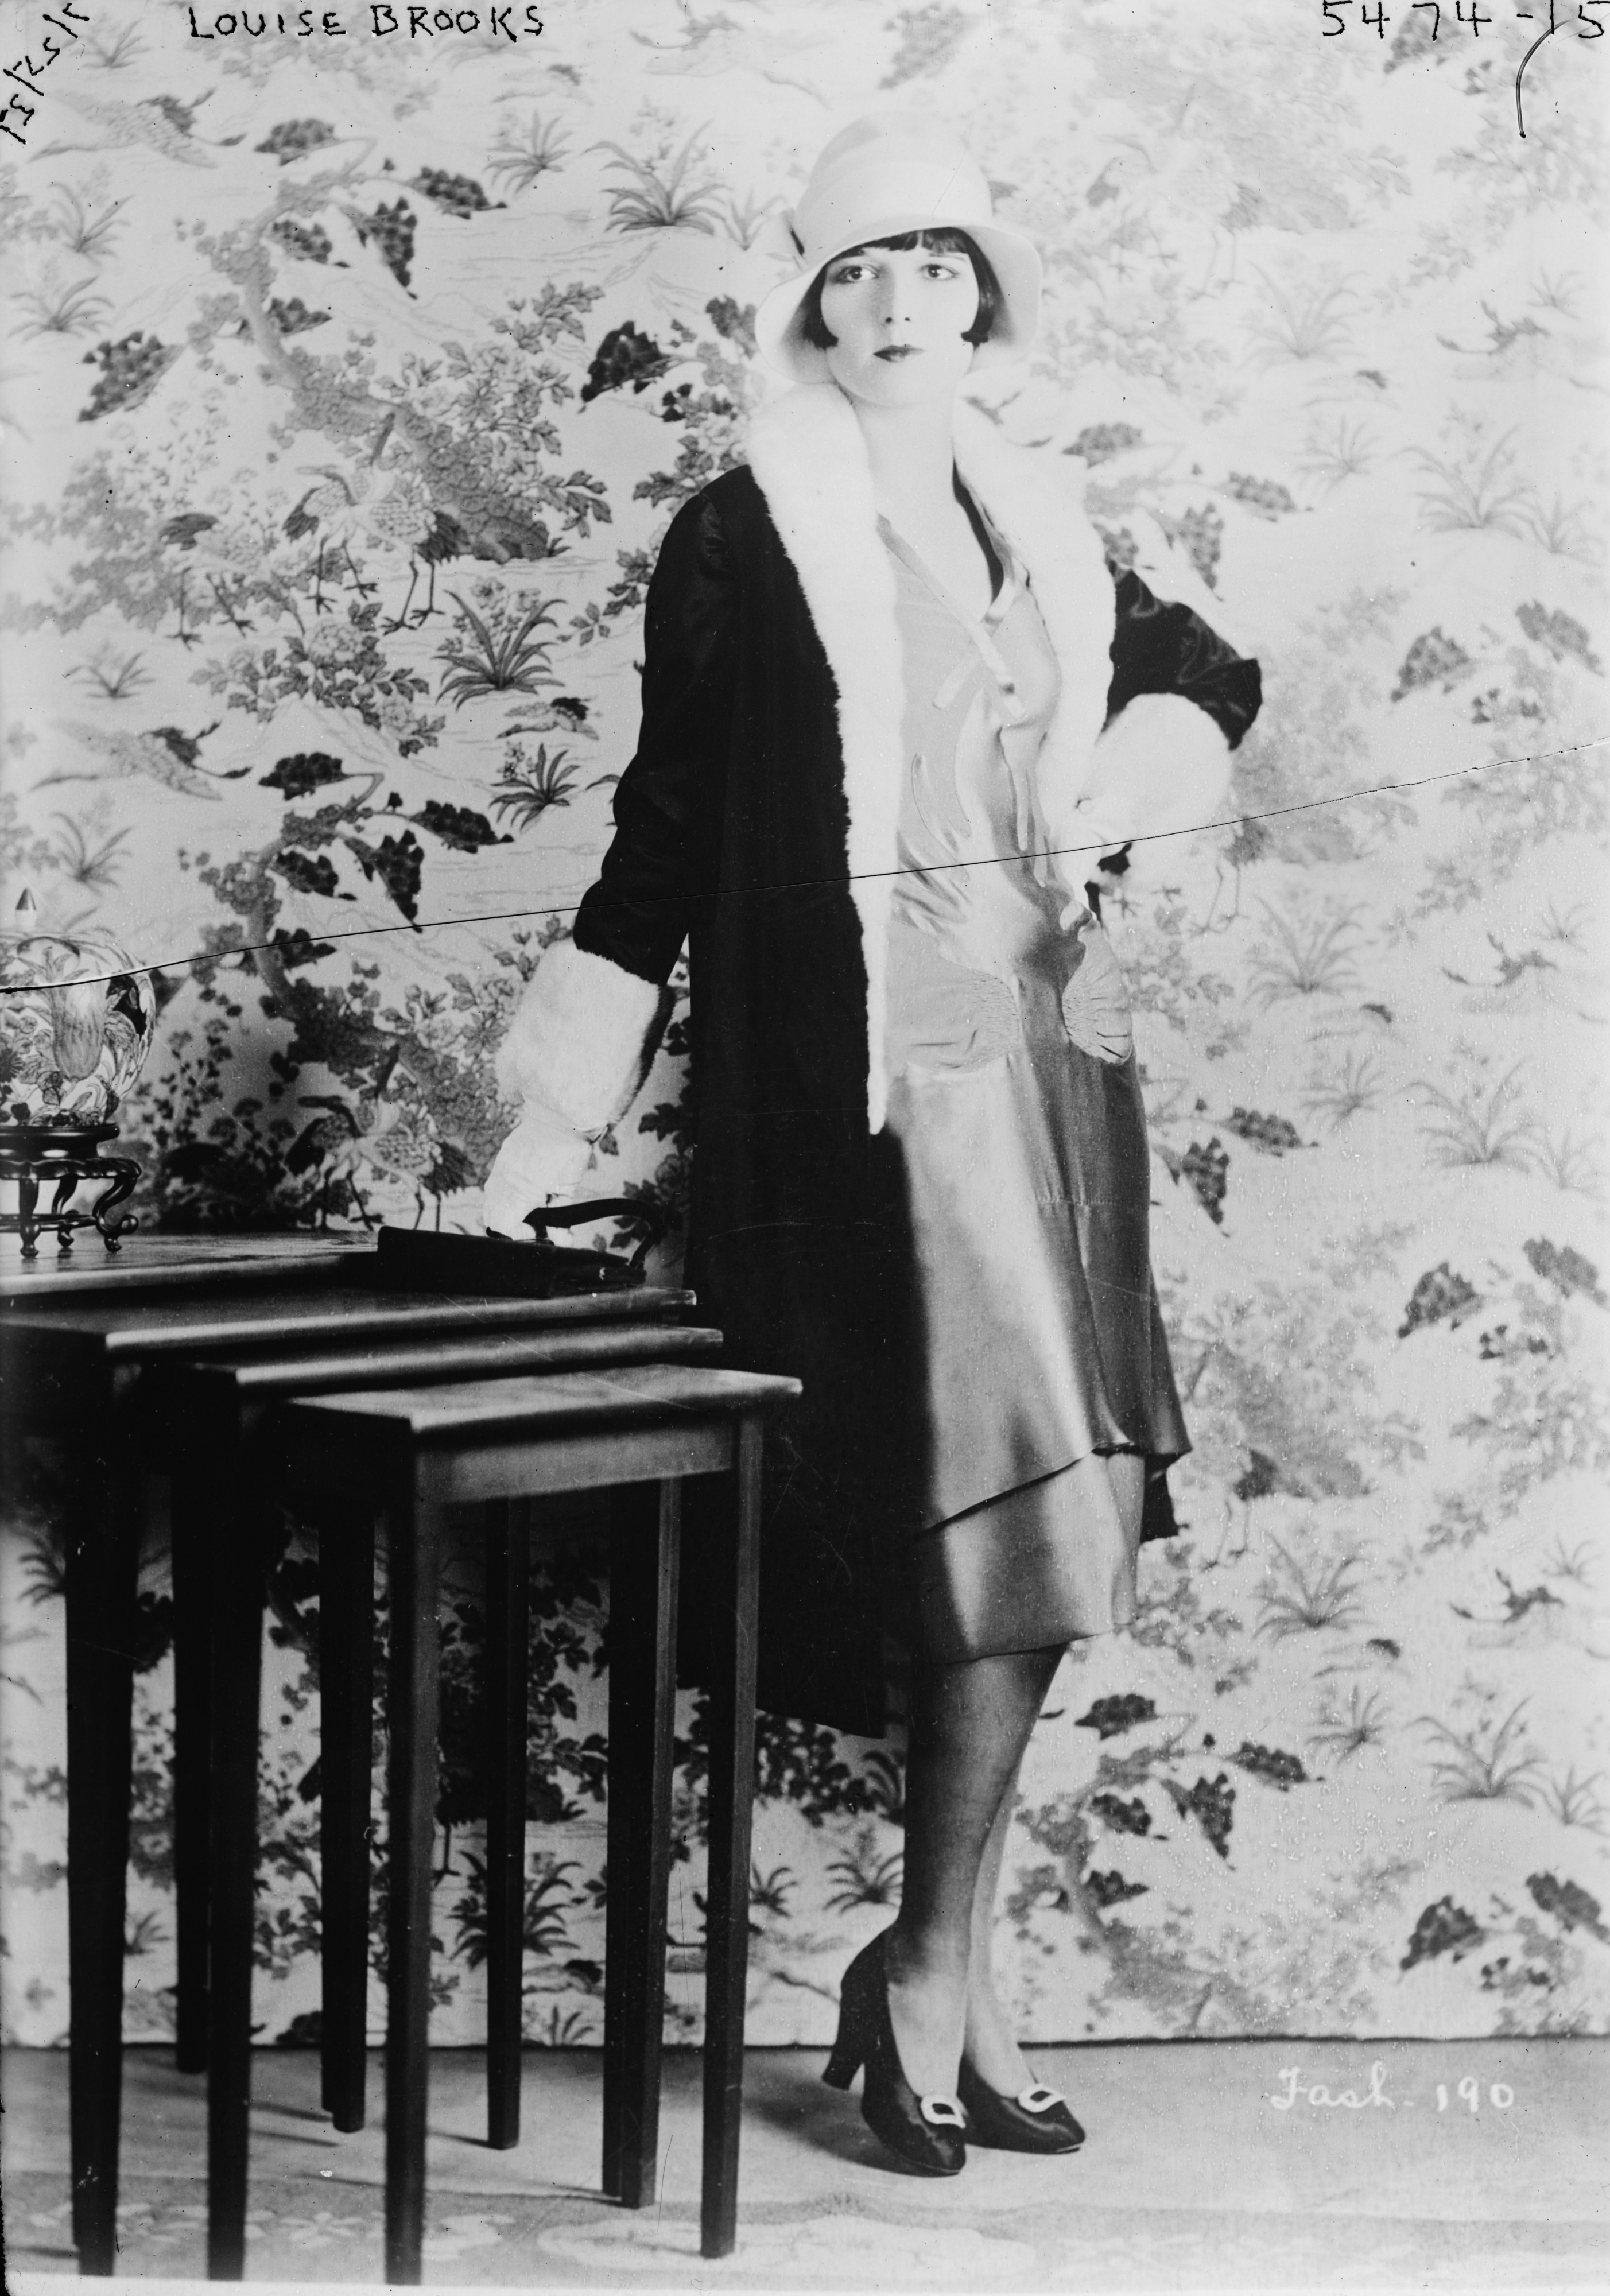 Louise Brooks 1